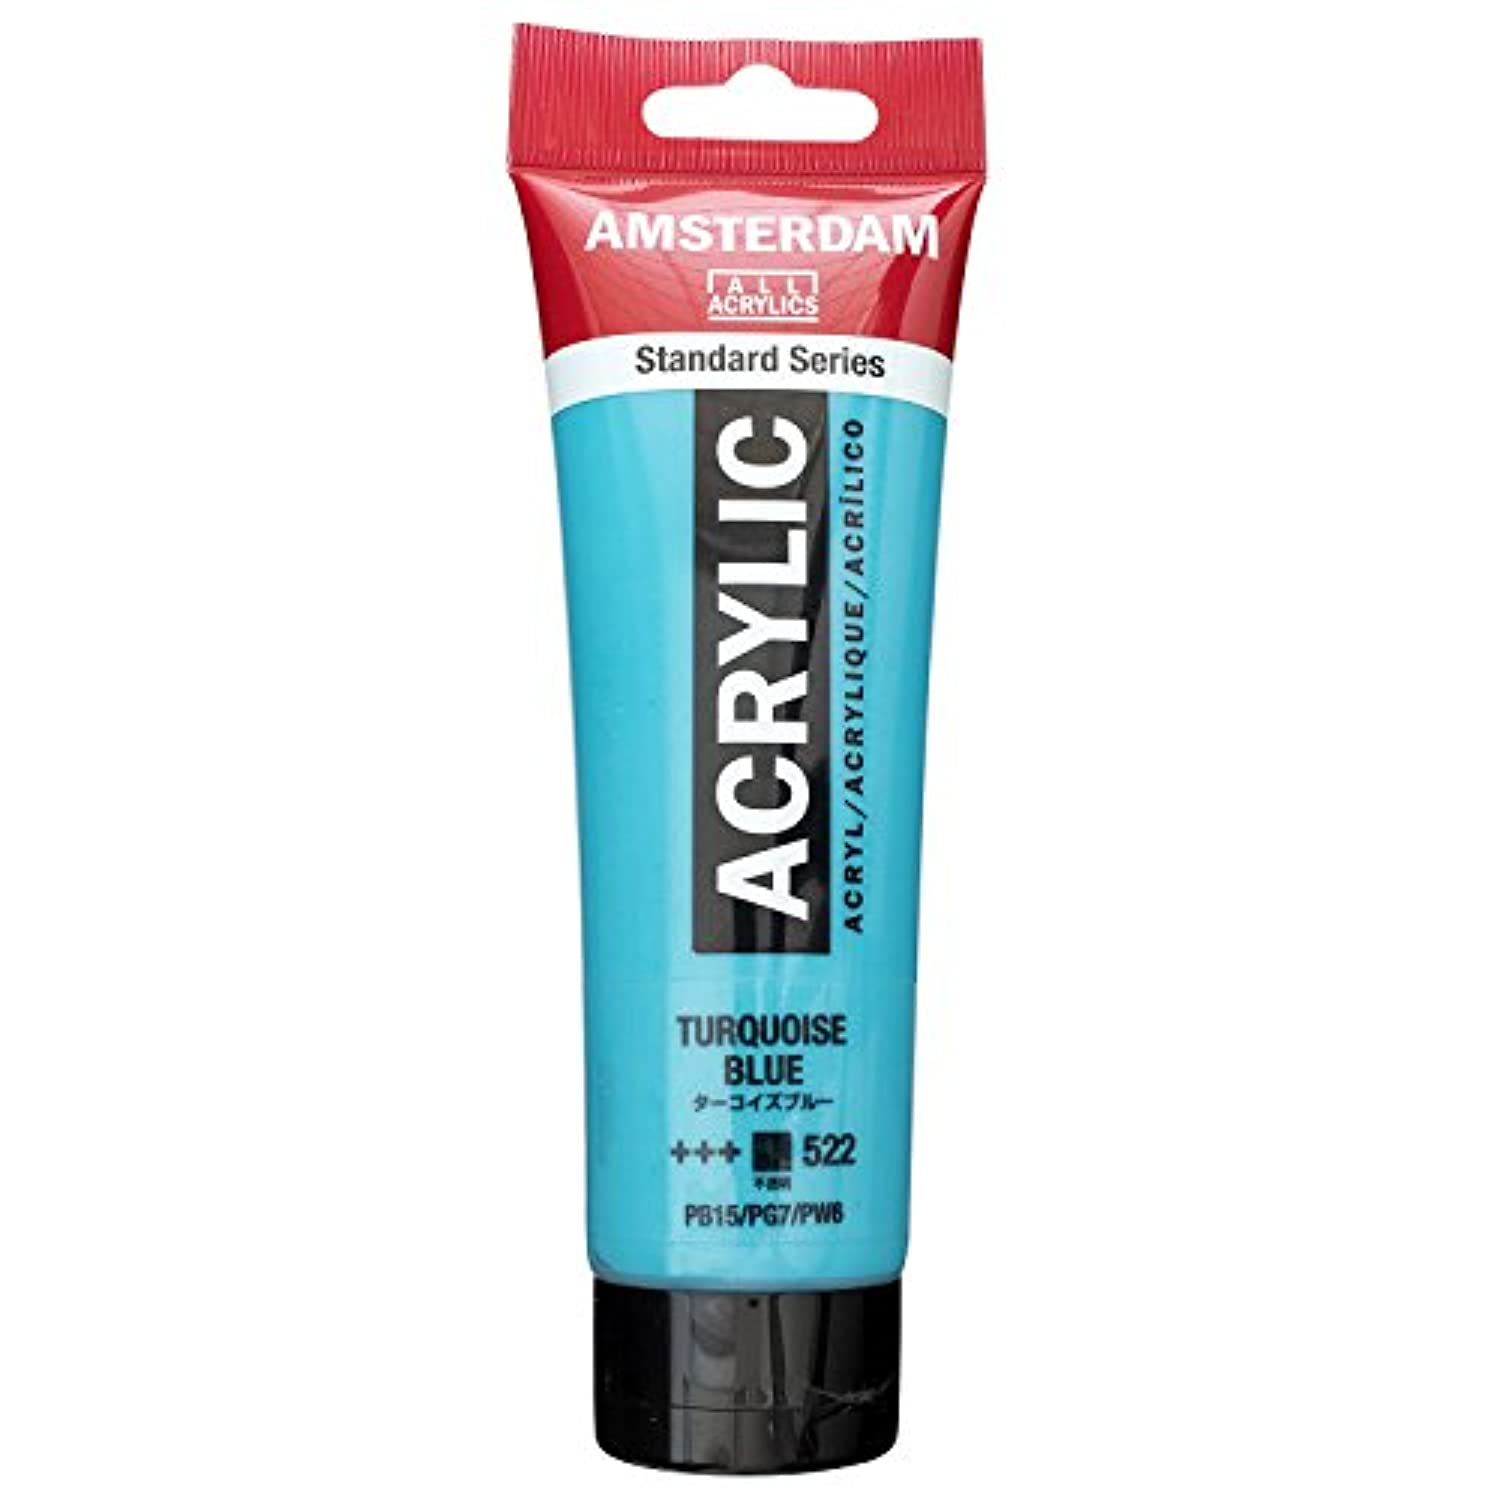 Royal Talens Amsterdam Standard Series Acrylic Color, 120ml Tube, Turquoise Blue (17095222)